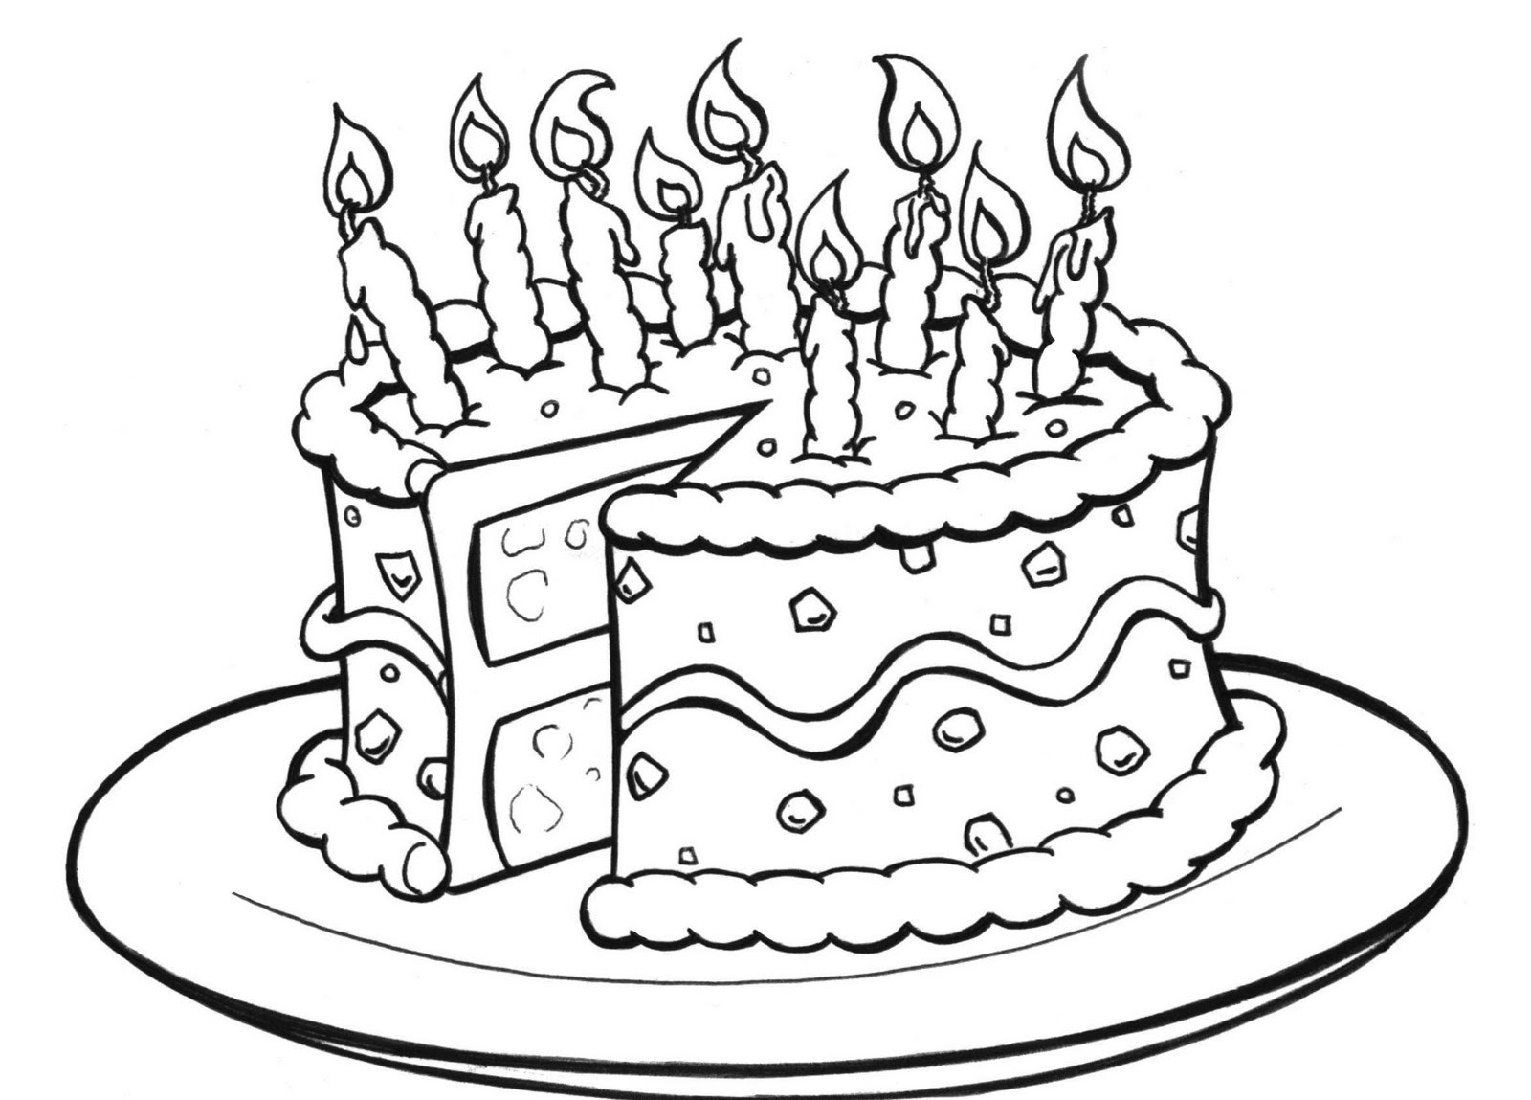 Cake Coloring Pages For Kids